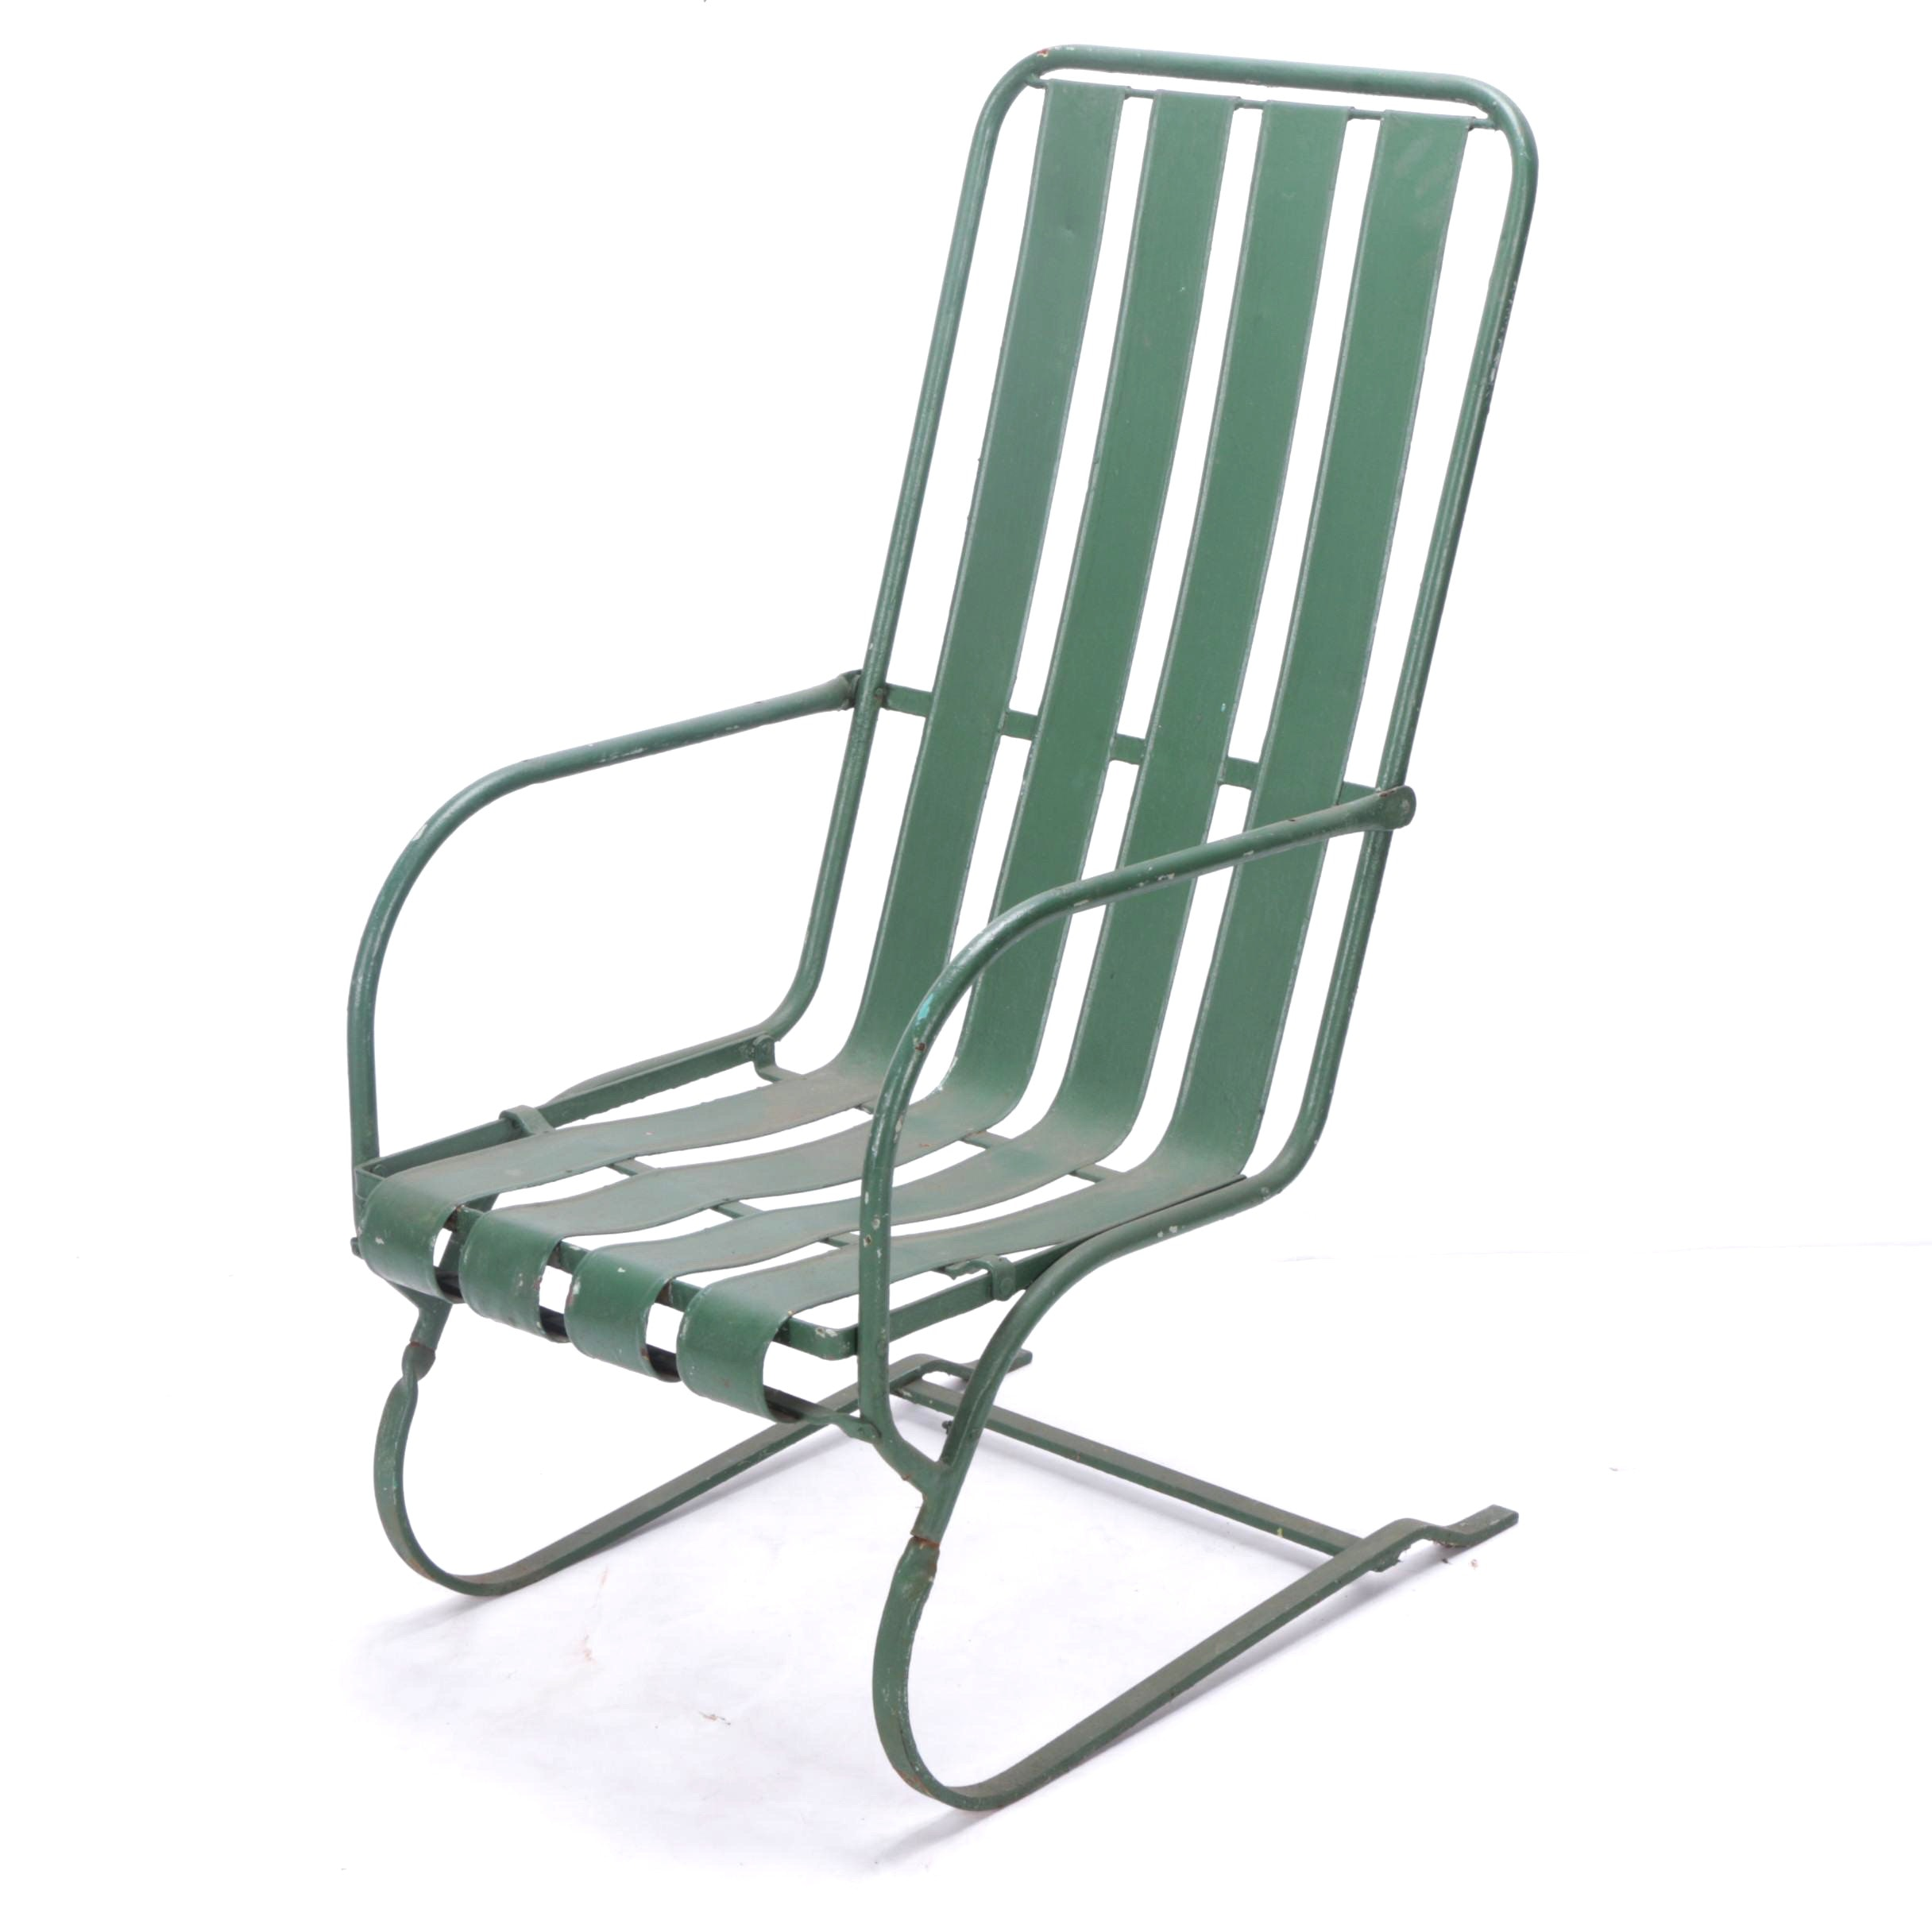 Vintage Green Metal Outdoor Rocking Chair